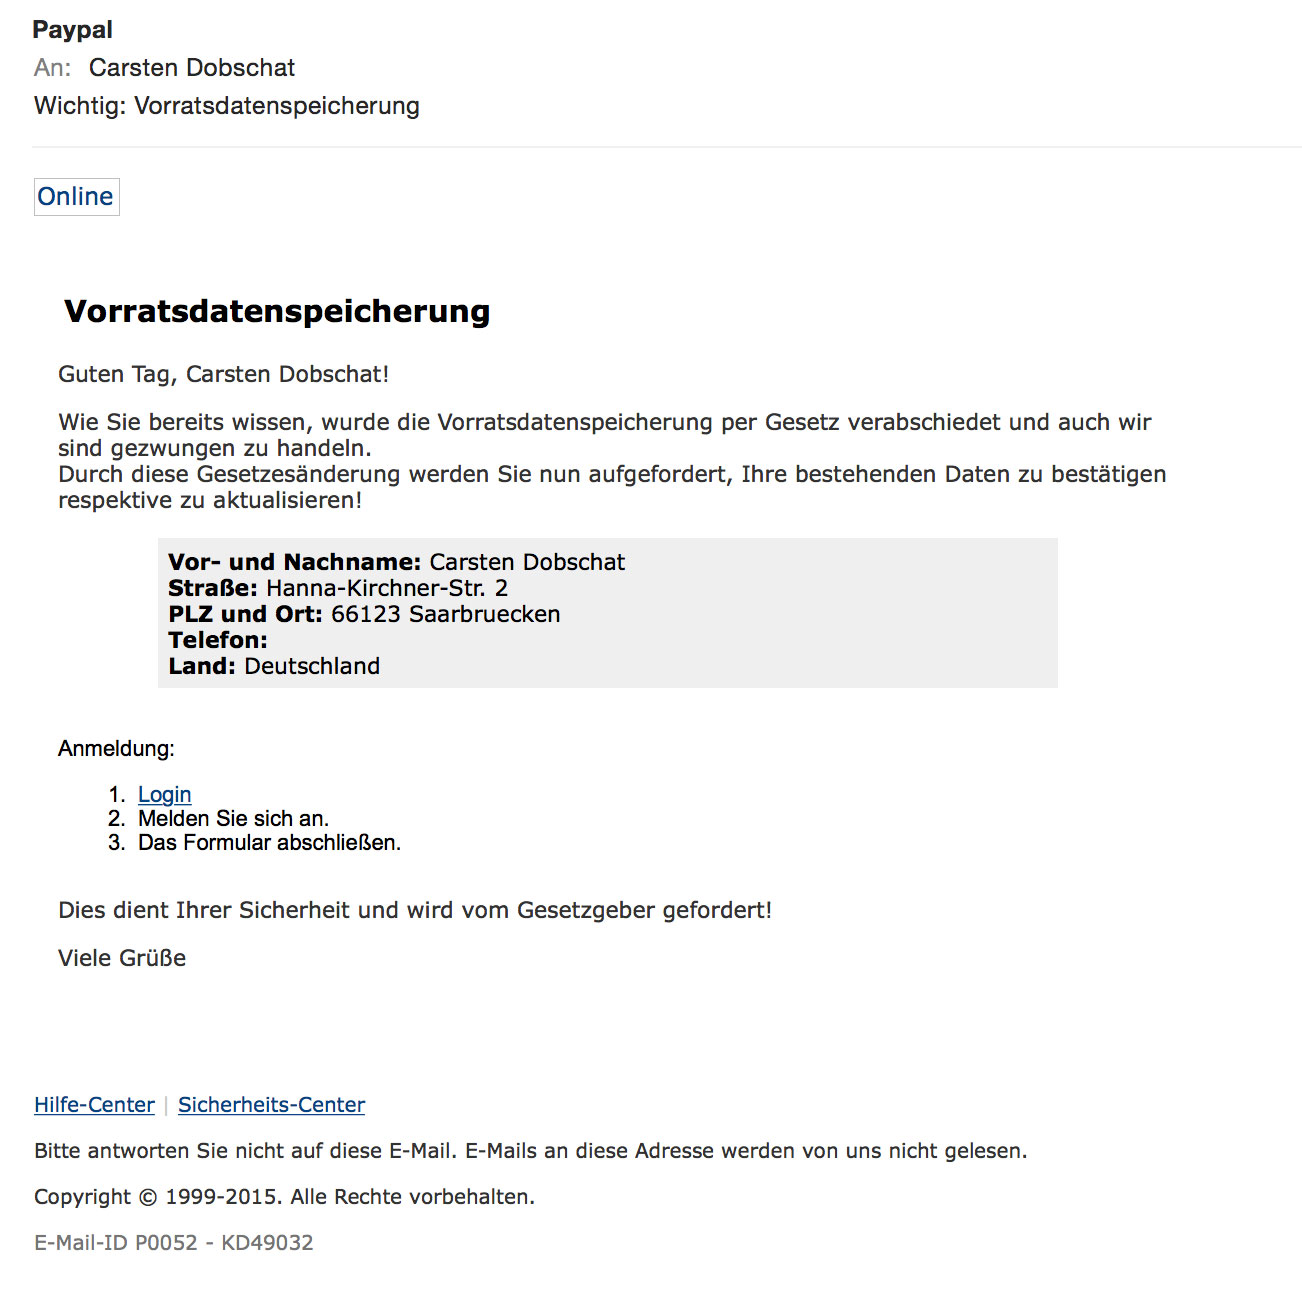 Paypal-Vorratsdatenspeicherungs-Phishing